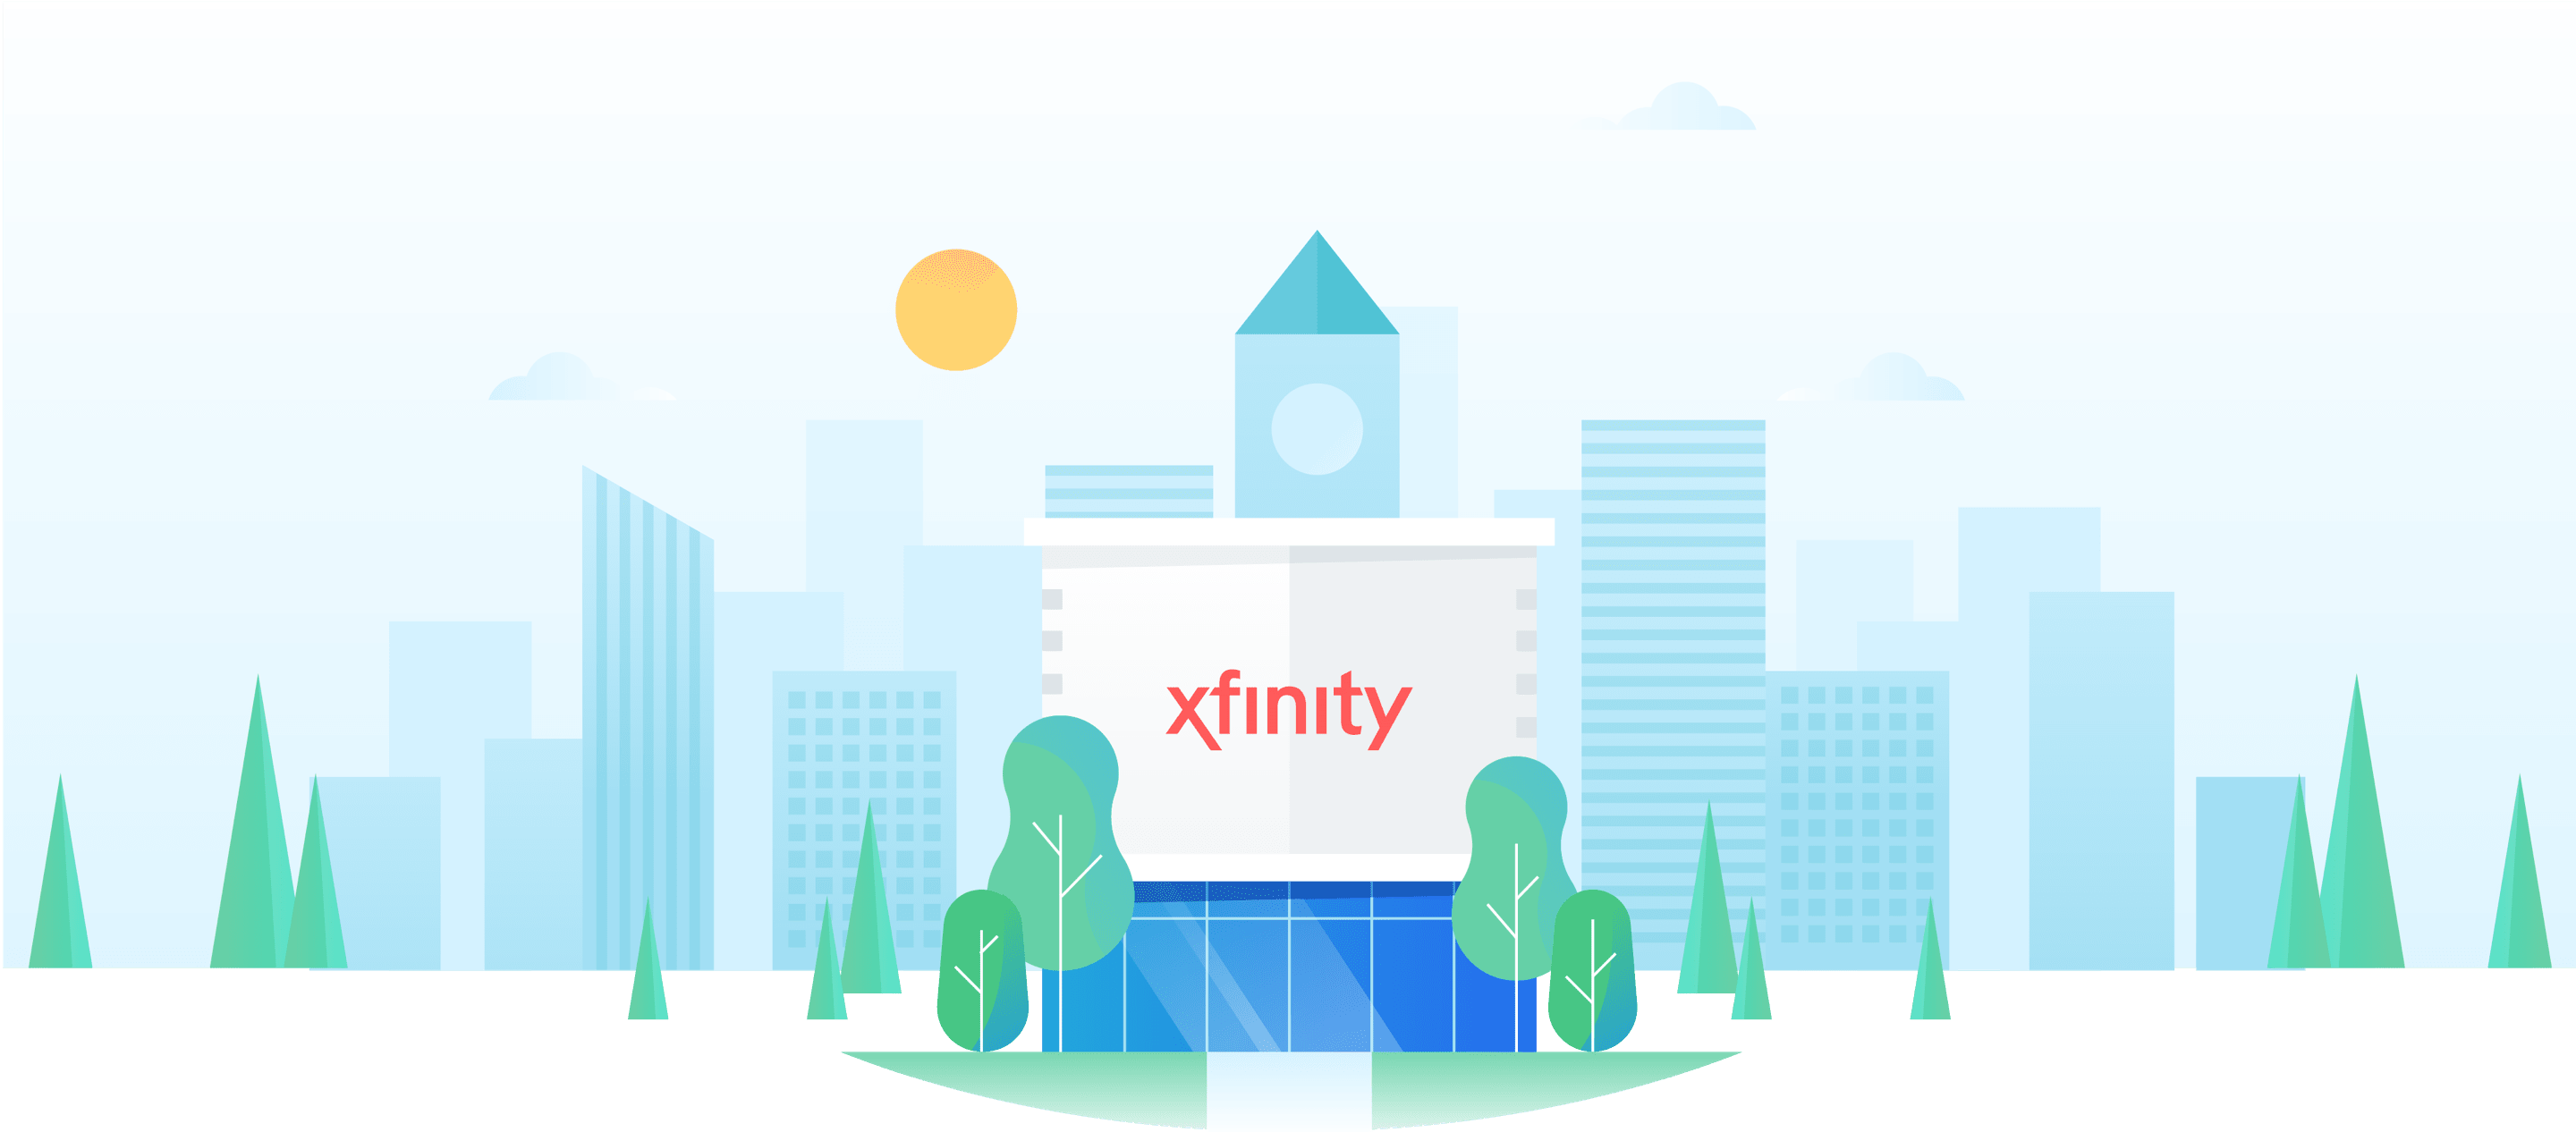 How Do I Trade In My Old Phone With Xfinity Mobile